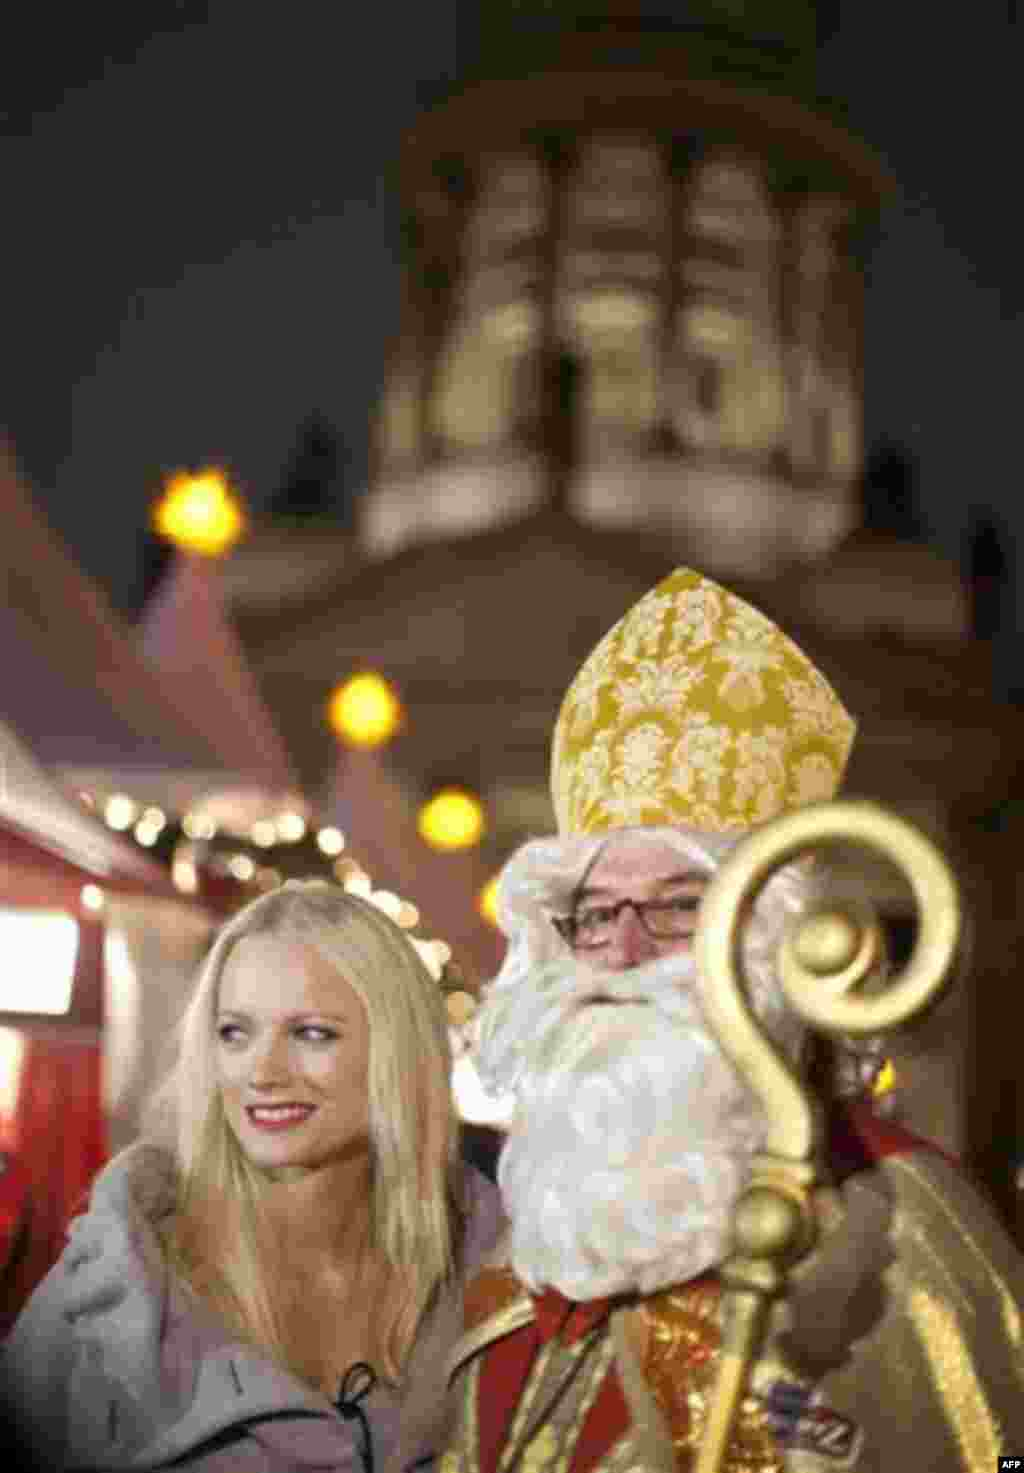 German model Franziska Knuppe, left, stands next to a man dressed as St Nicholas before the opining ceremony of the Christmas market on Gendarmenmarkt in Berlin on Monday, Nov. 22, 2010. Seen in the background is the French cathedral. (AP Photo/Gero Brelo